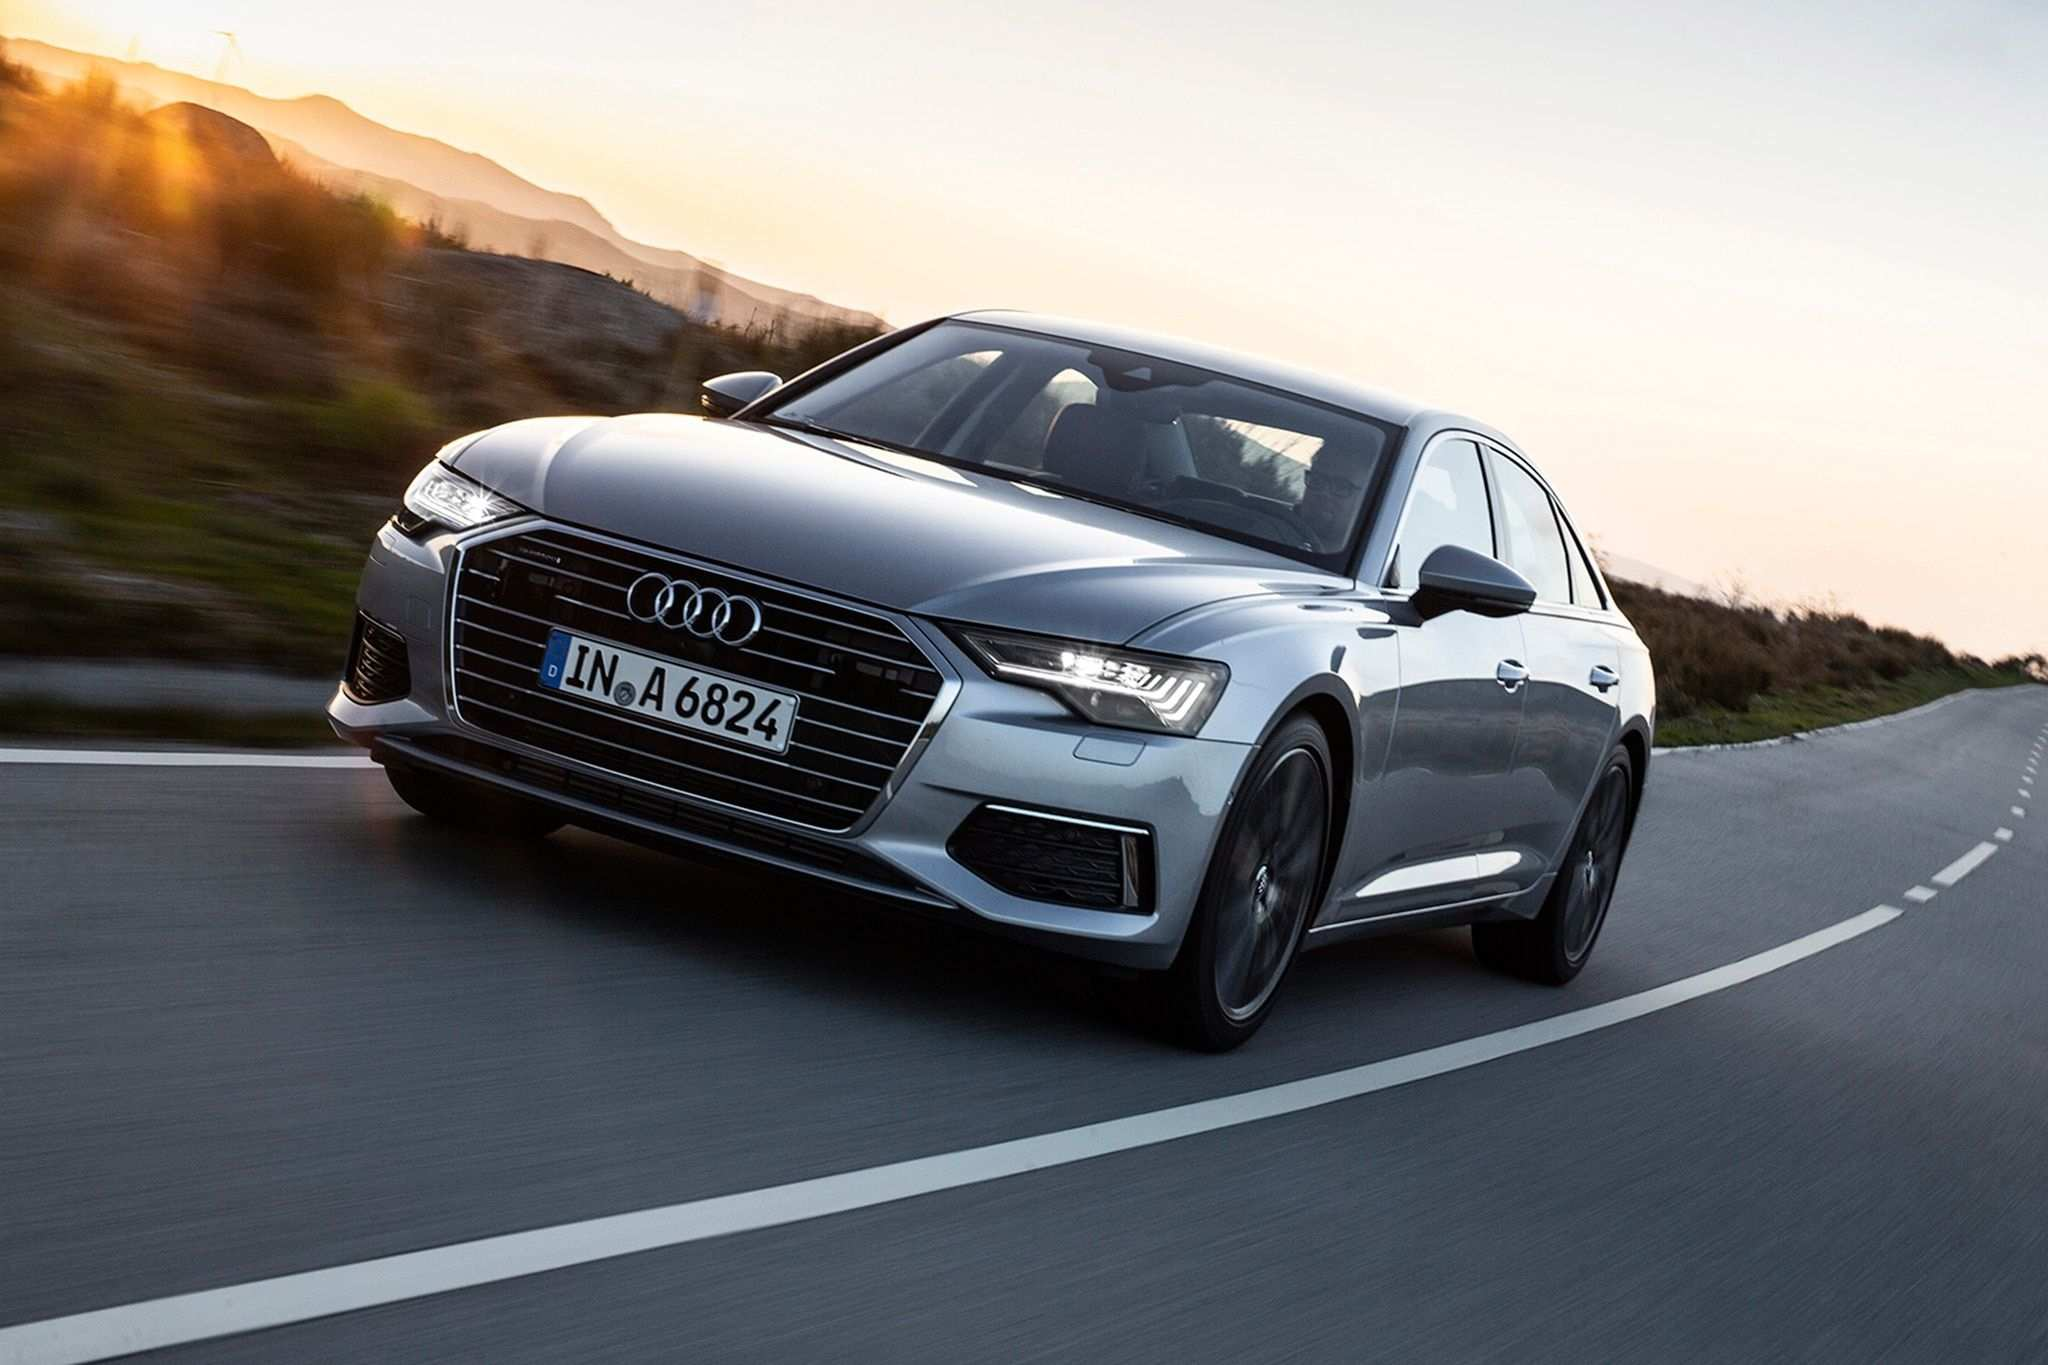 65 The 2020 Audi A6 Comes Engine by 2020 Audi A6 Comes